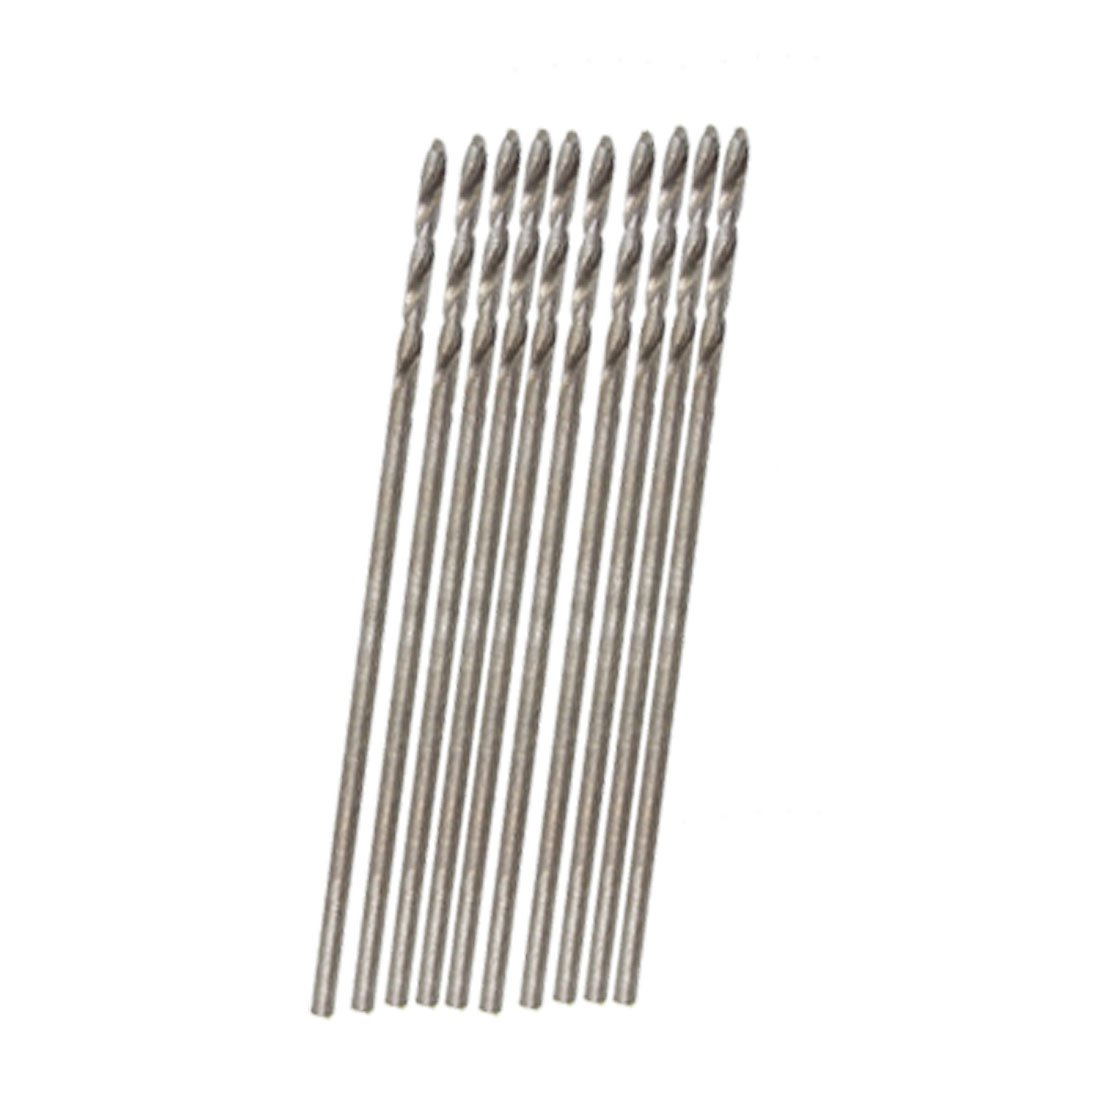 IMC Hot 2015 Highly Commend20 Pcs 30mm Long 0.8mm Dia Micro HSS Twist Drill Bit